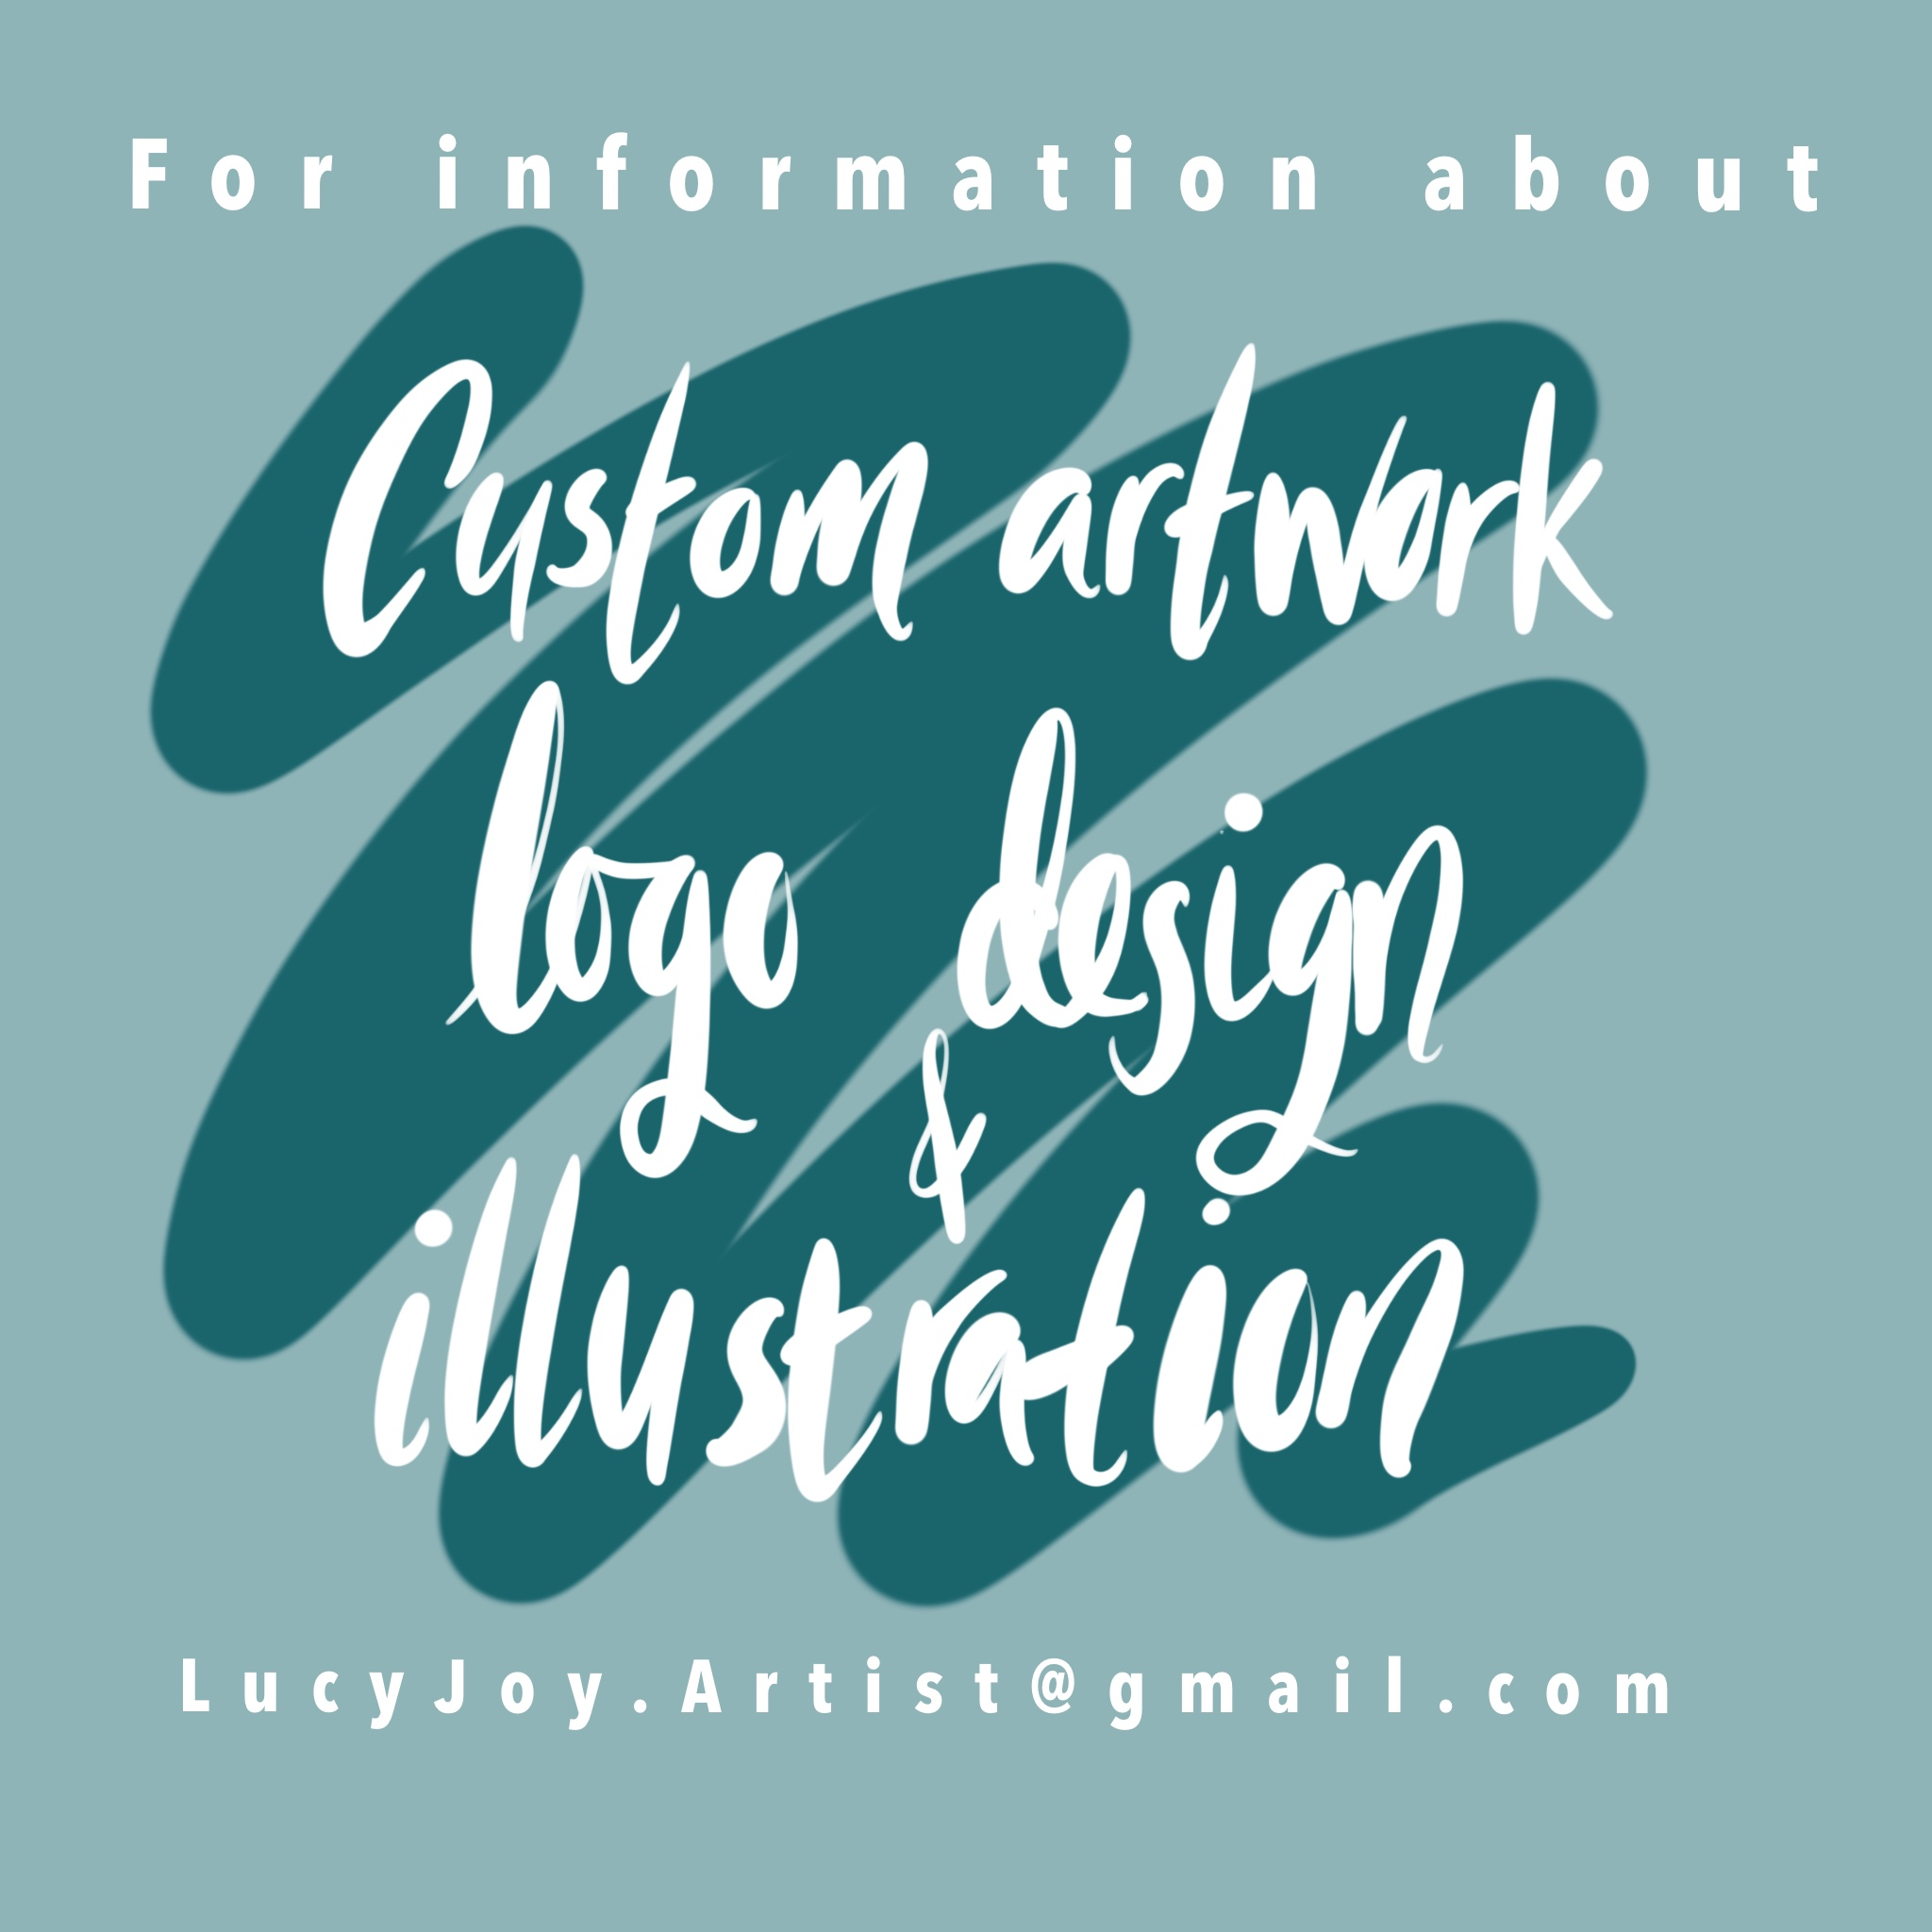 Lucy Joy Artist - logo design and custom artwork